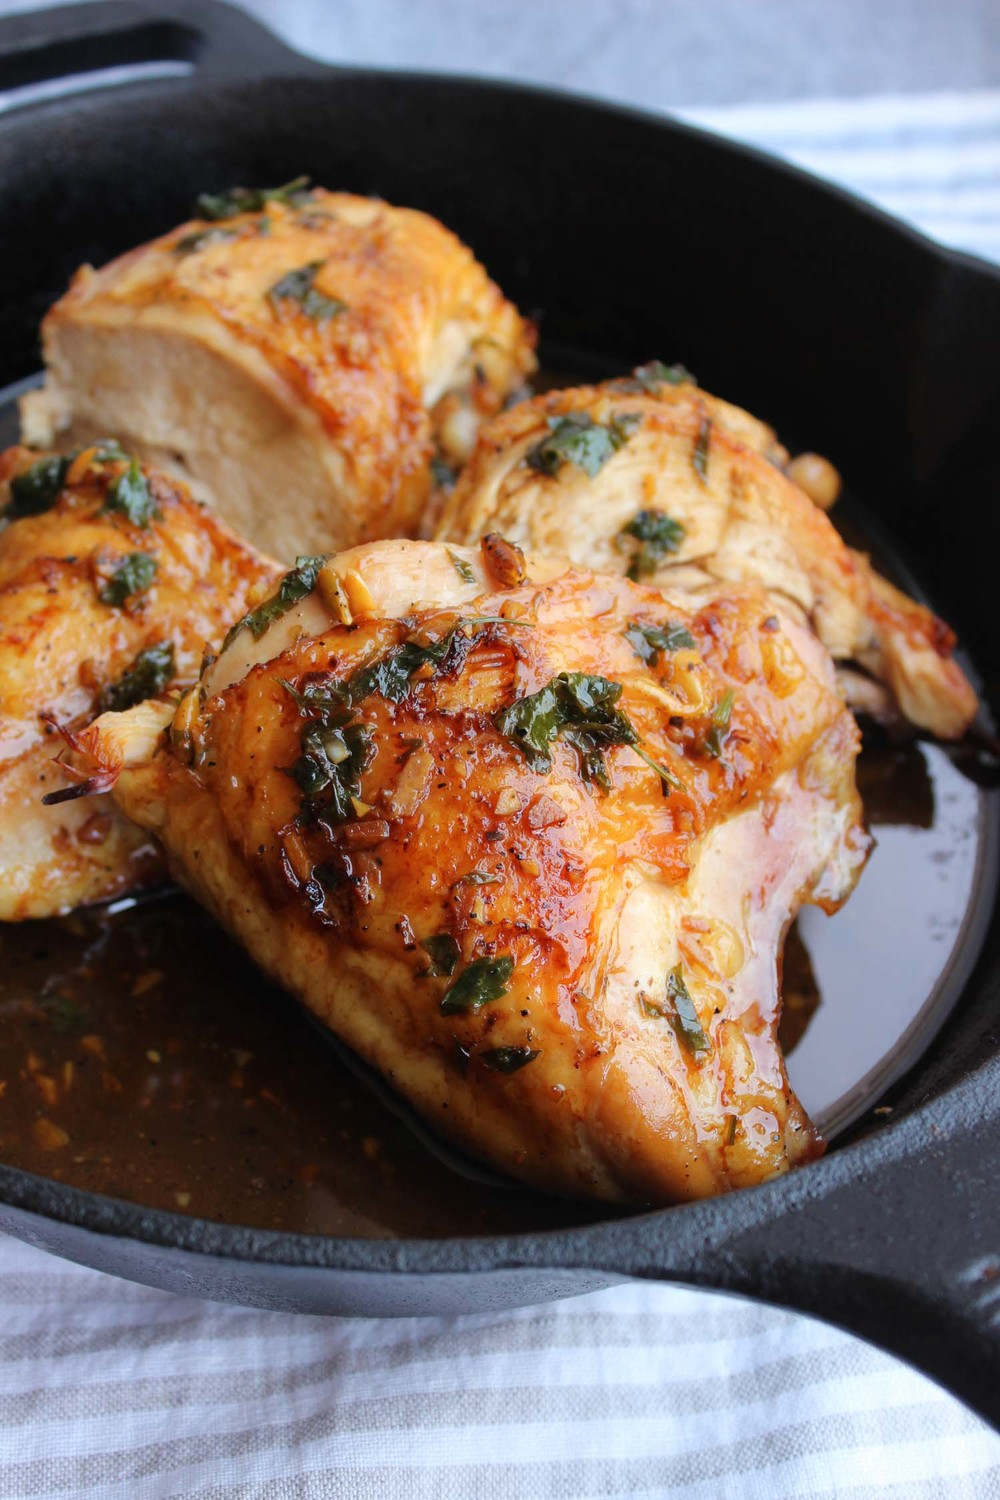 Rao's Famous Lemon Chicken (Pollo Al Limone) | Image: Laura Messersmith